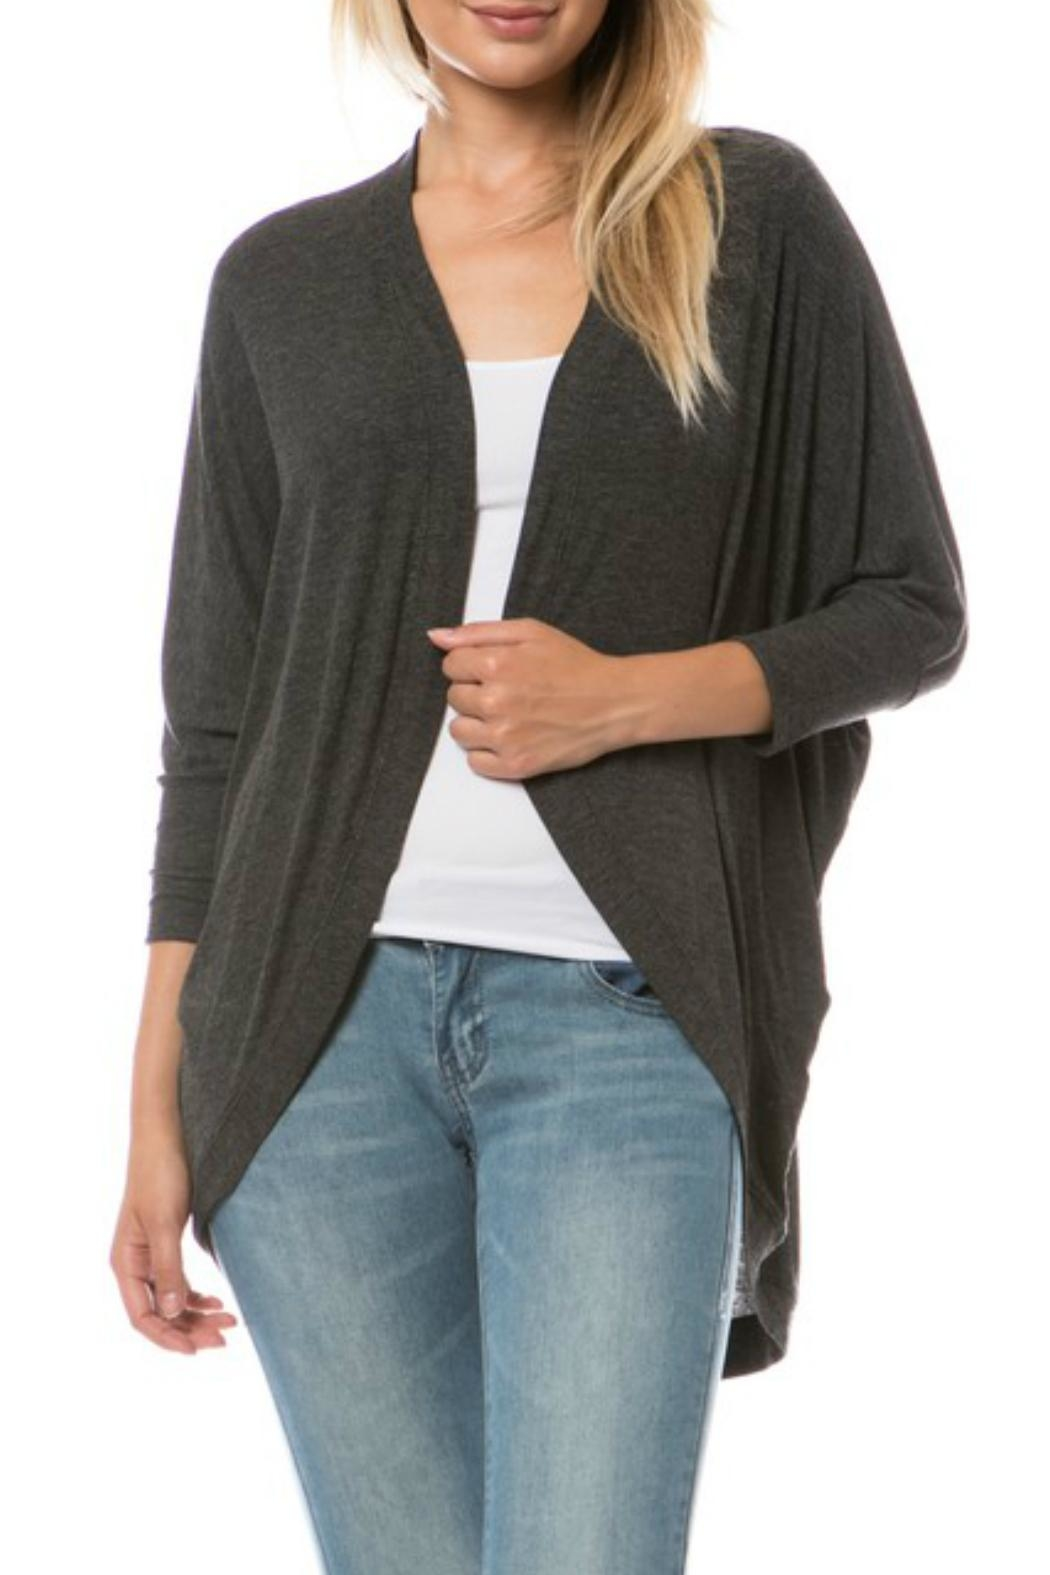 Minx Lightweight Ribbed Shrug from California by MINX — Shoptiques